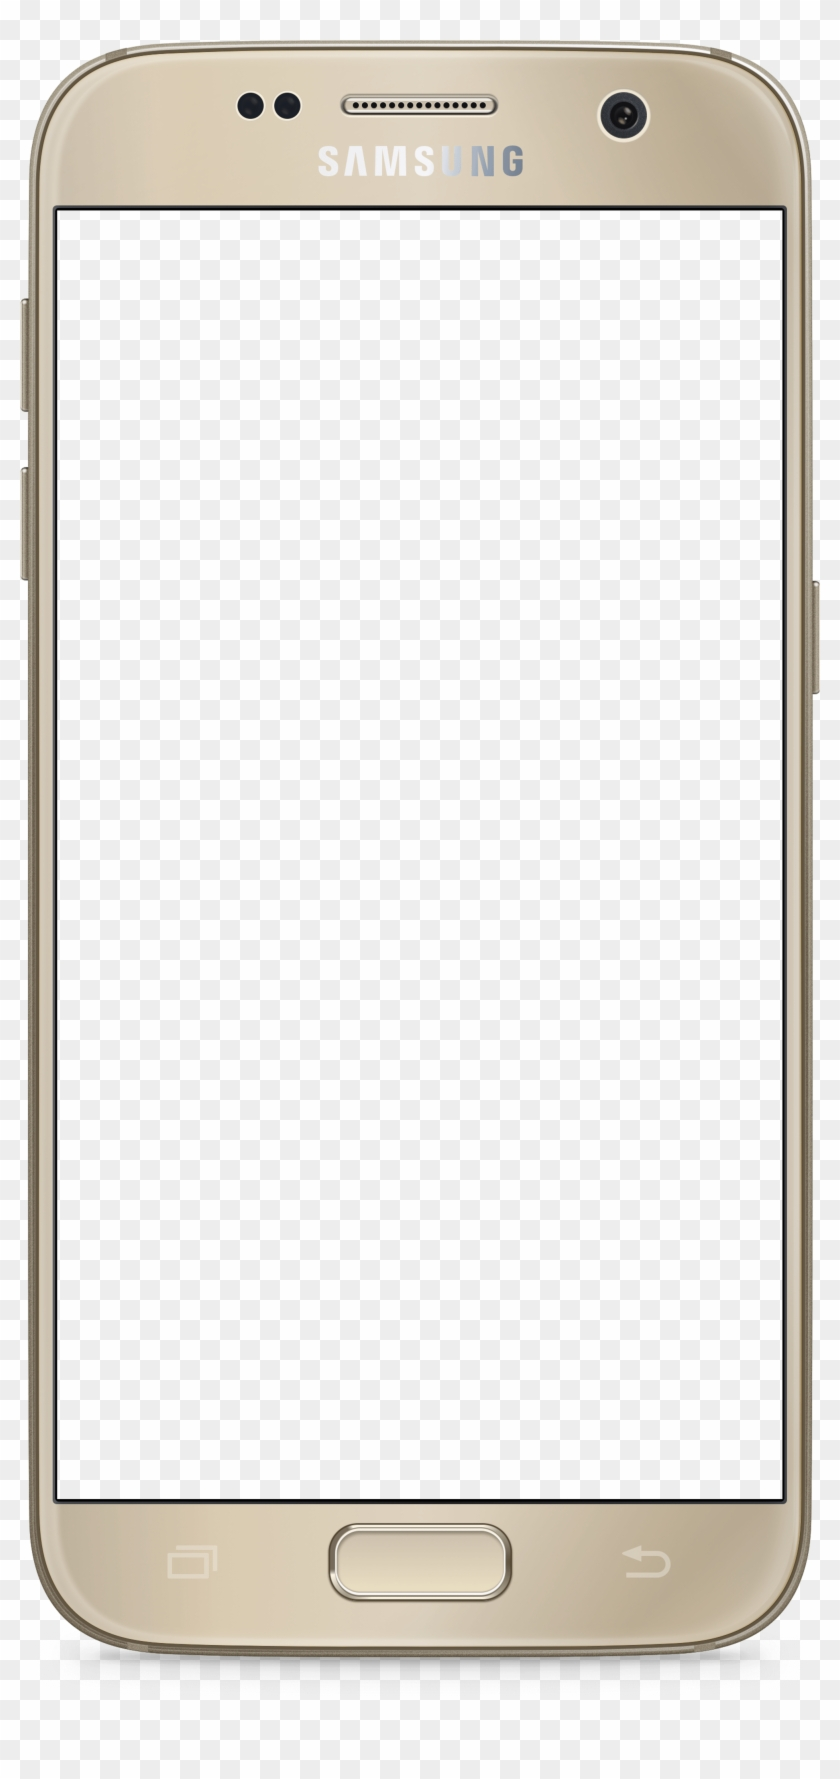 Mobile Frame Blank, HD Png Download.